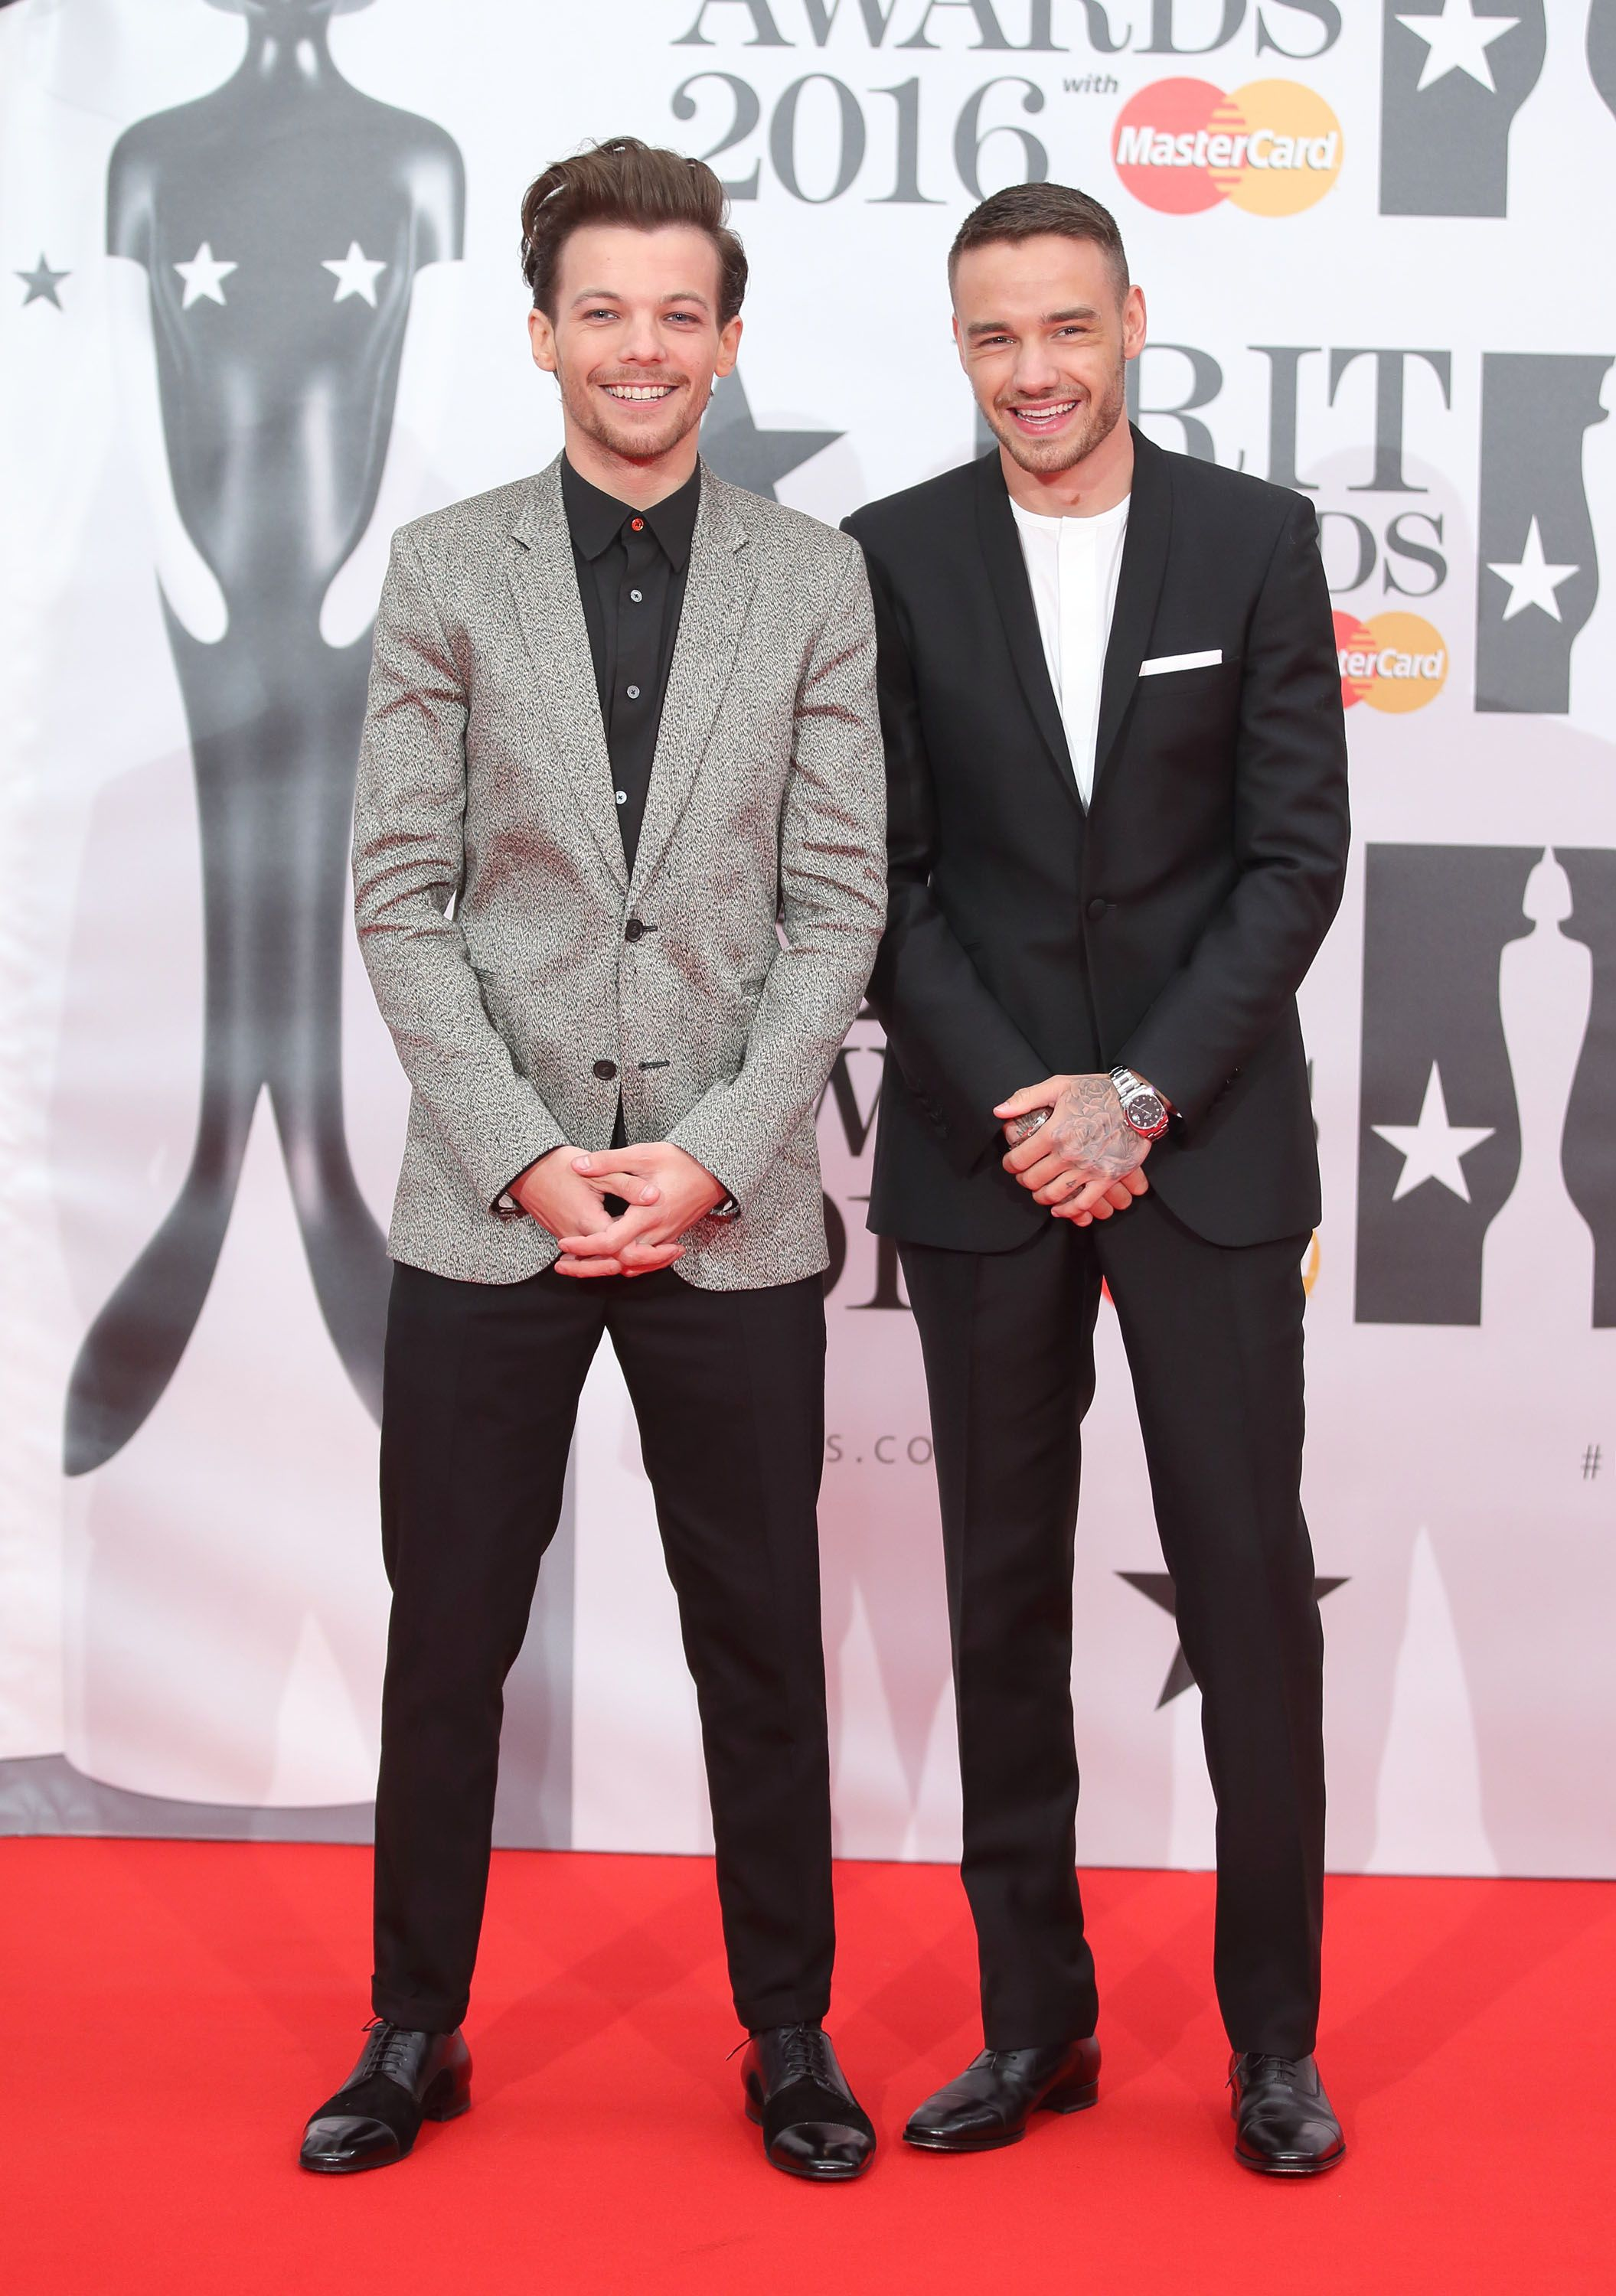 Liam Payne Says He and Louis Tomlinson Hated Each Other During Their One Direction Days